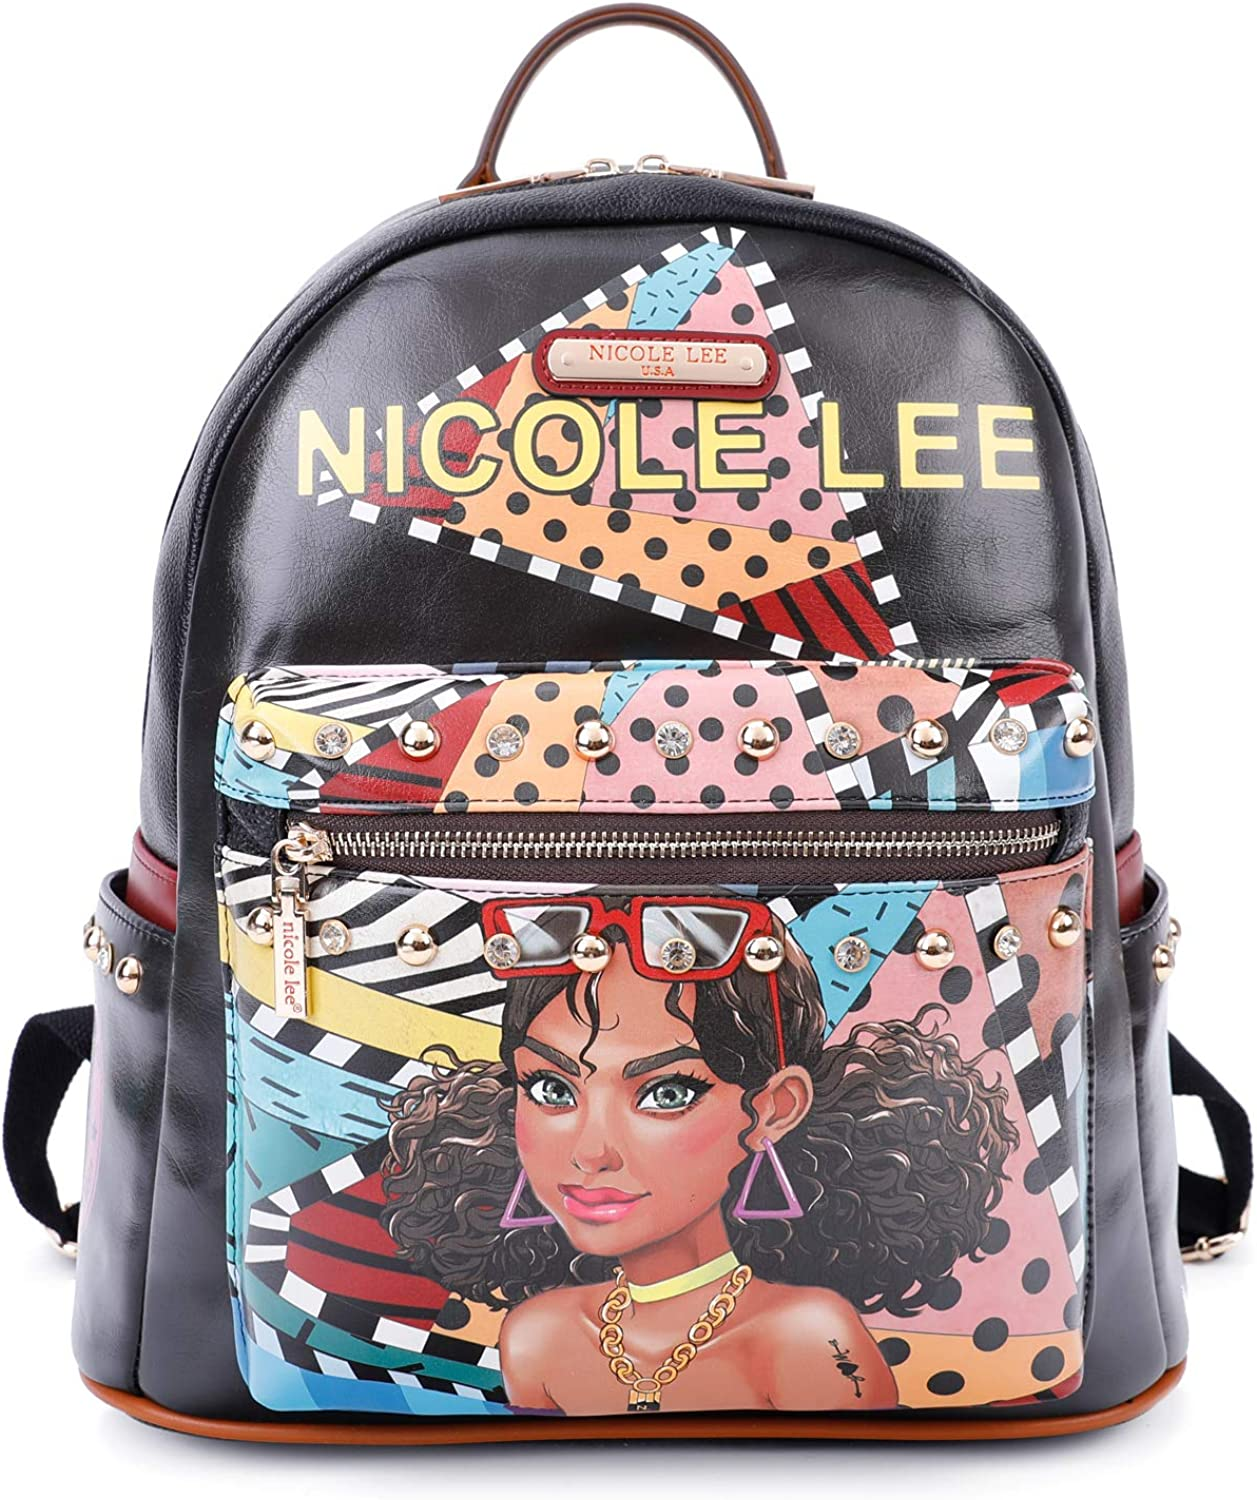 Women's Spacious Colorful Print Fashion Backpack, Adjustable Shoulder Pads